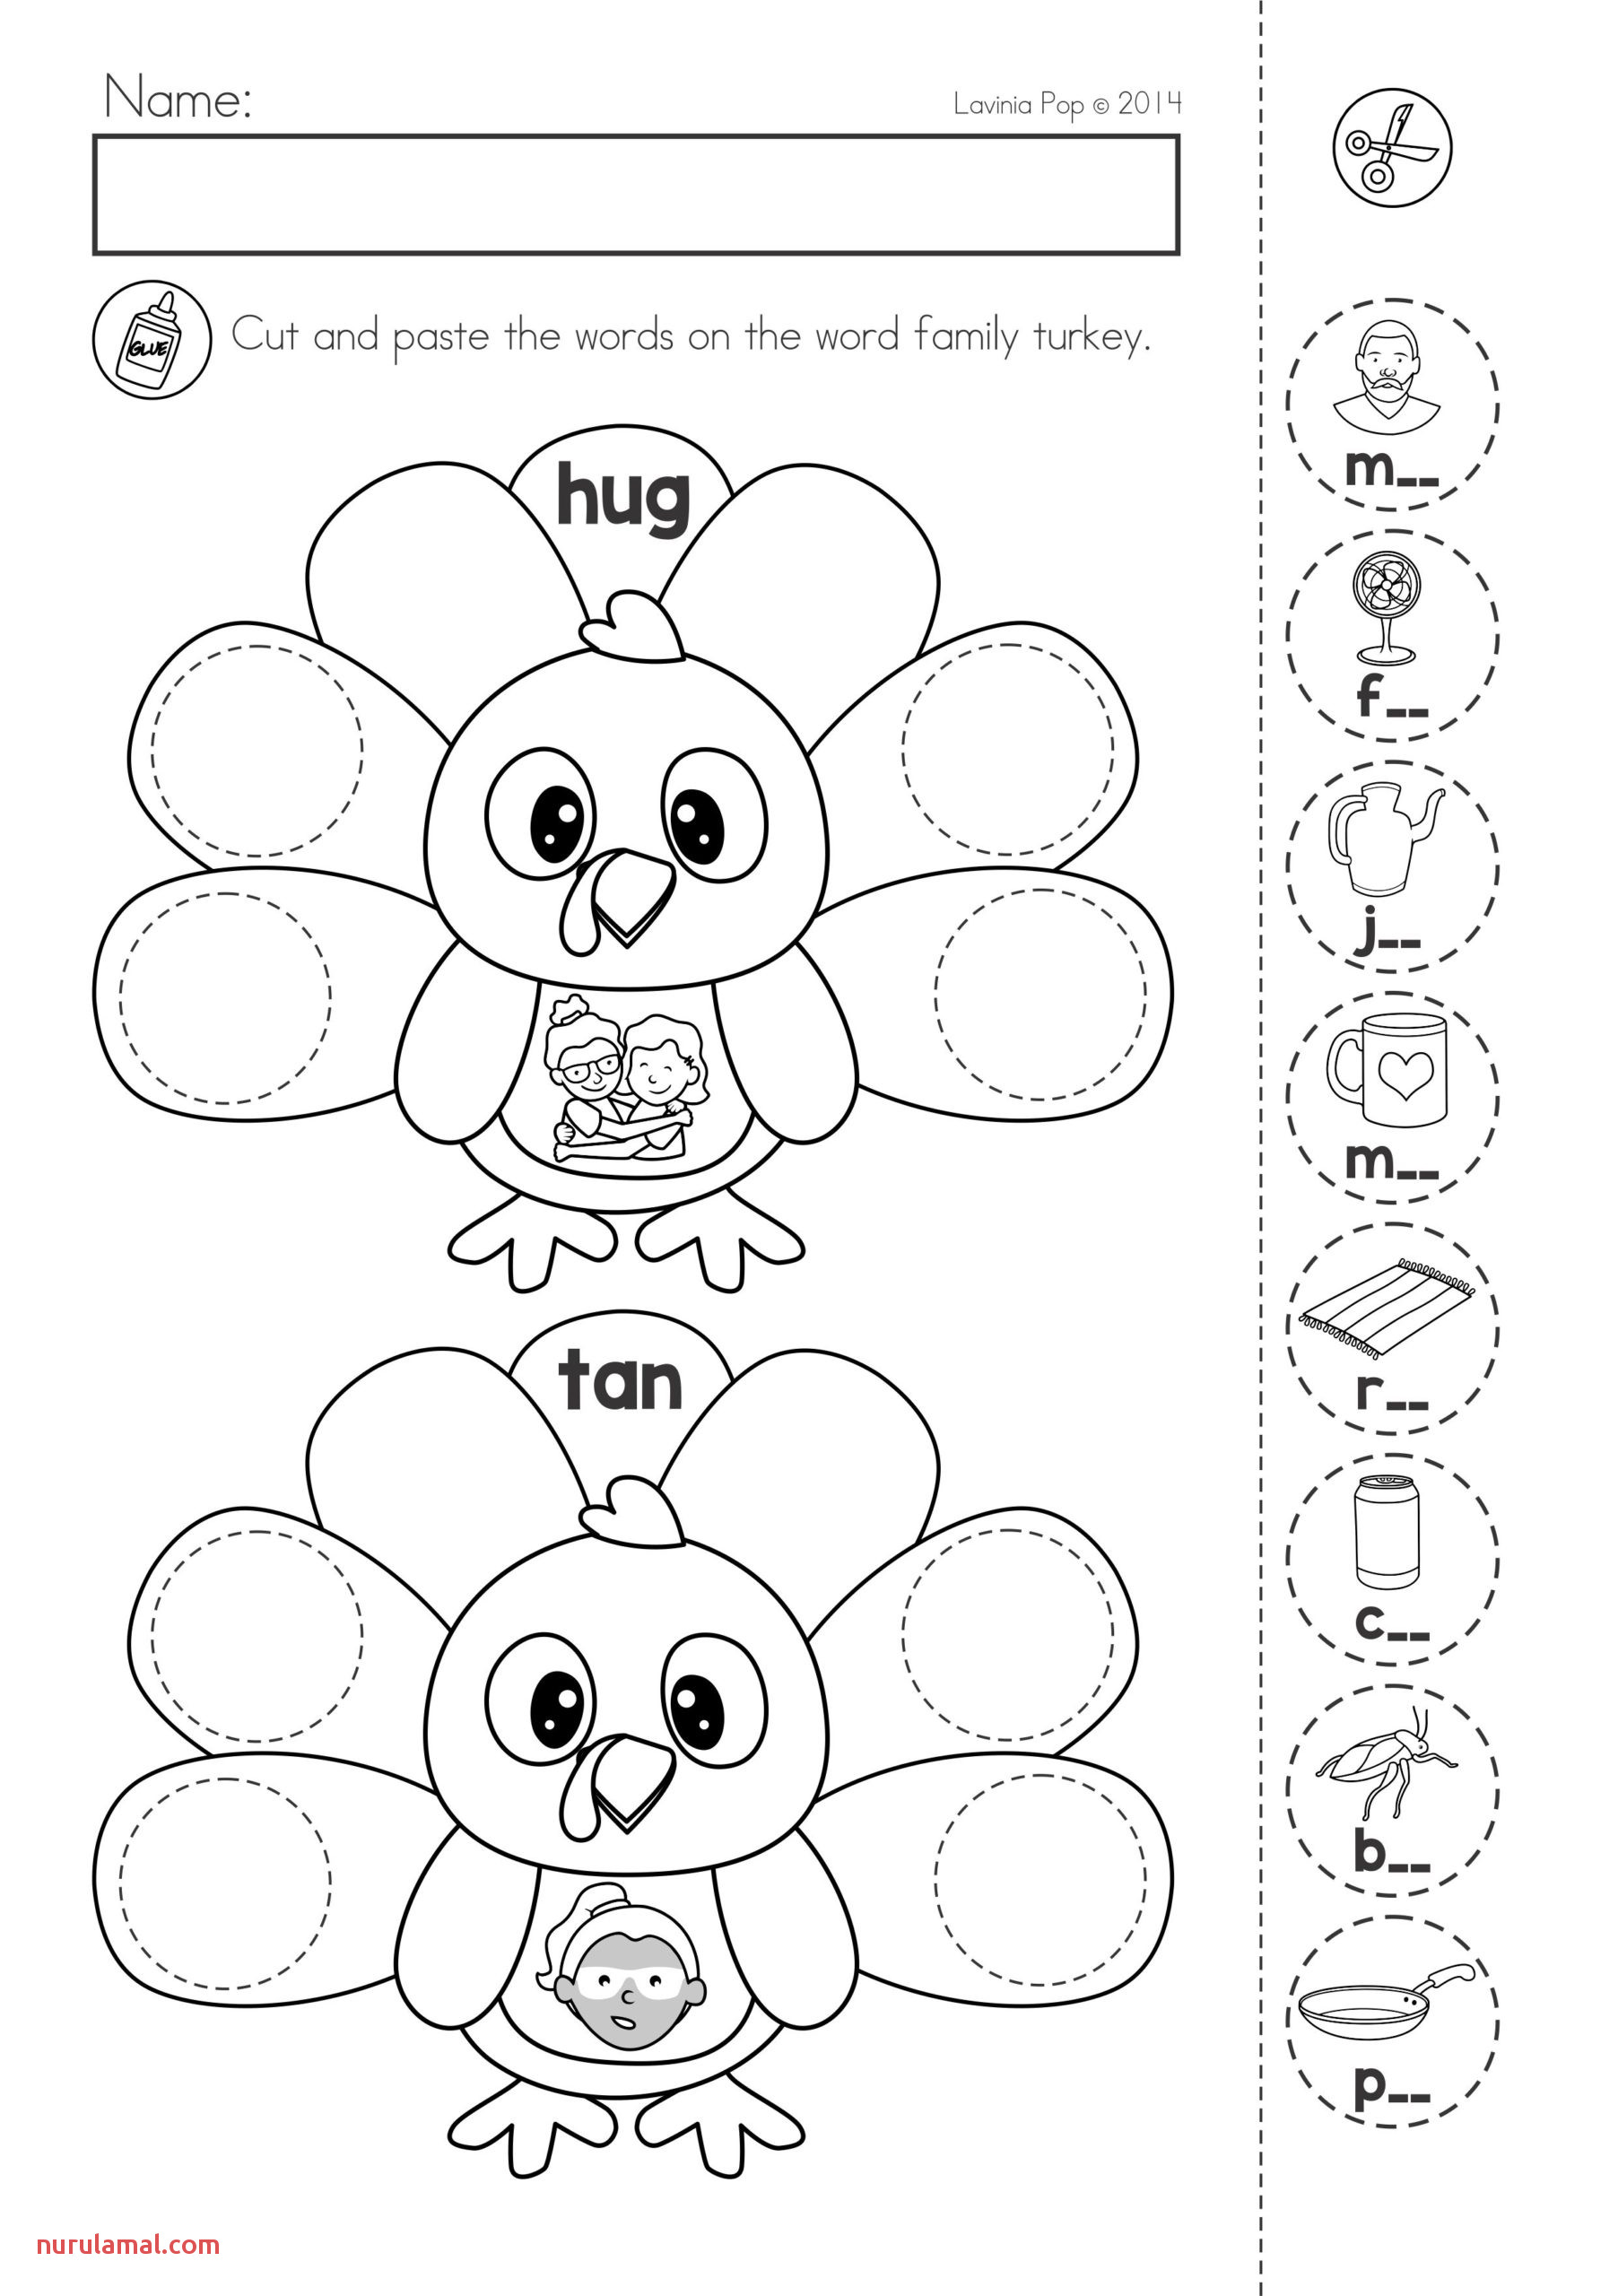 geometry textbook kids worksheet connections answers fun math sheets for 1st grade one step addition and subtraction equations 4th subtracting fractions with regrouping pdf 7th word scaled